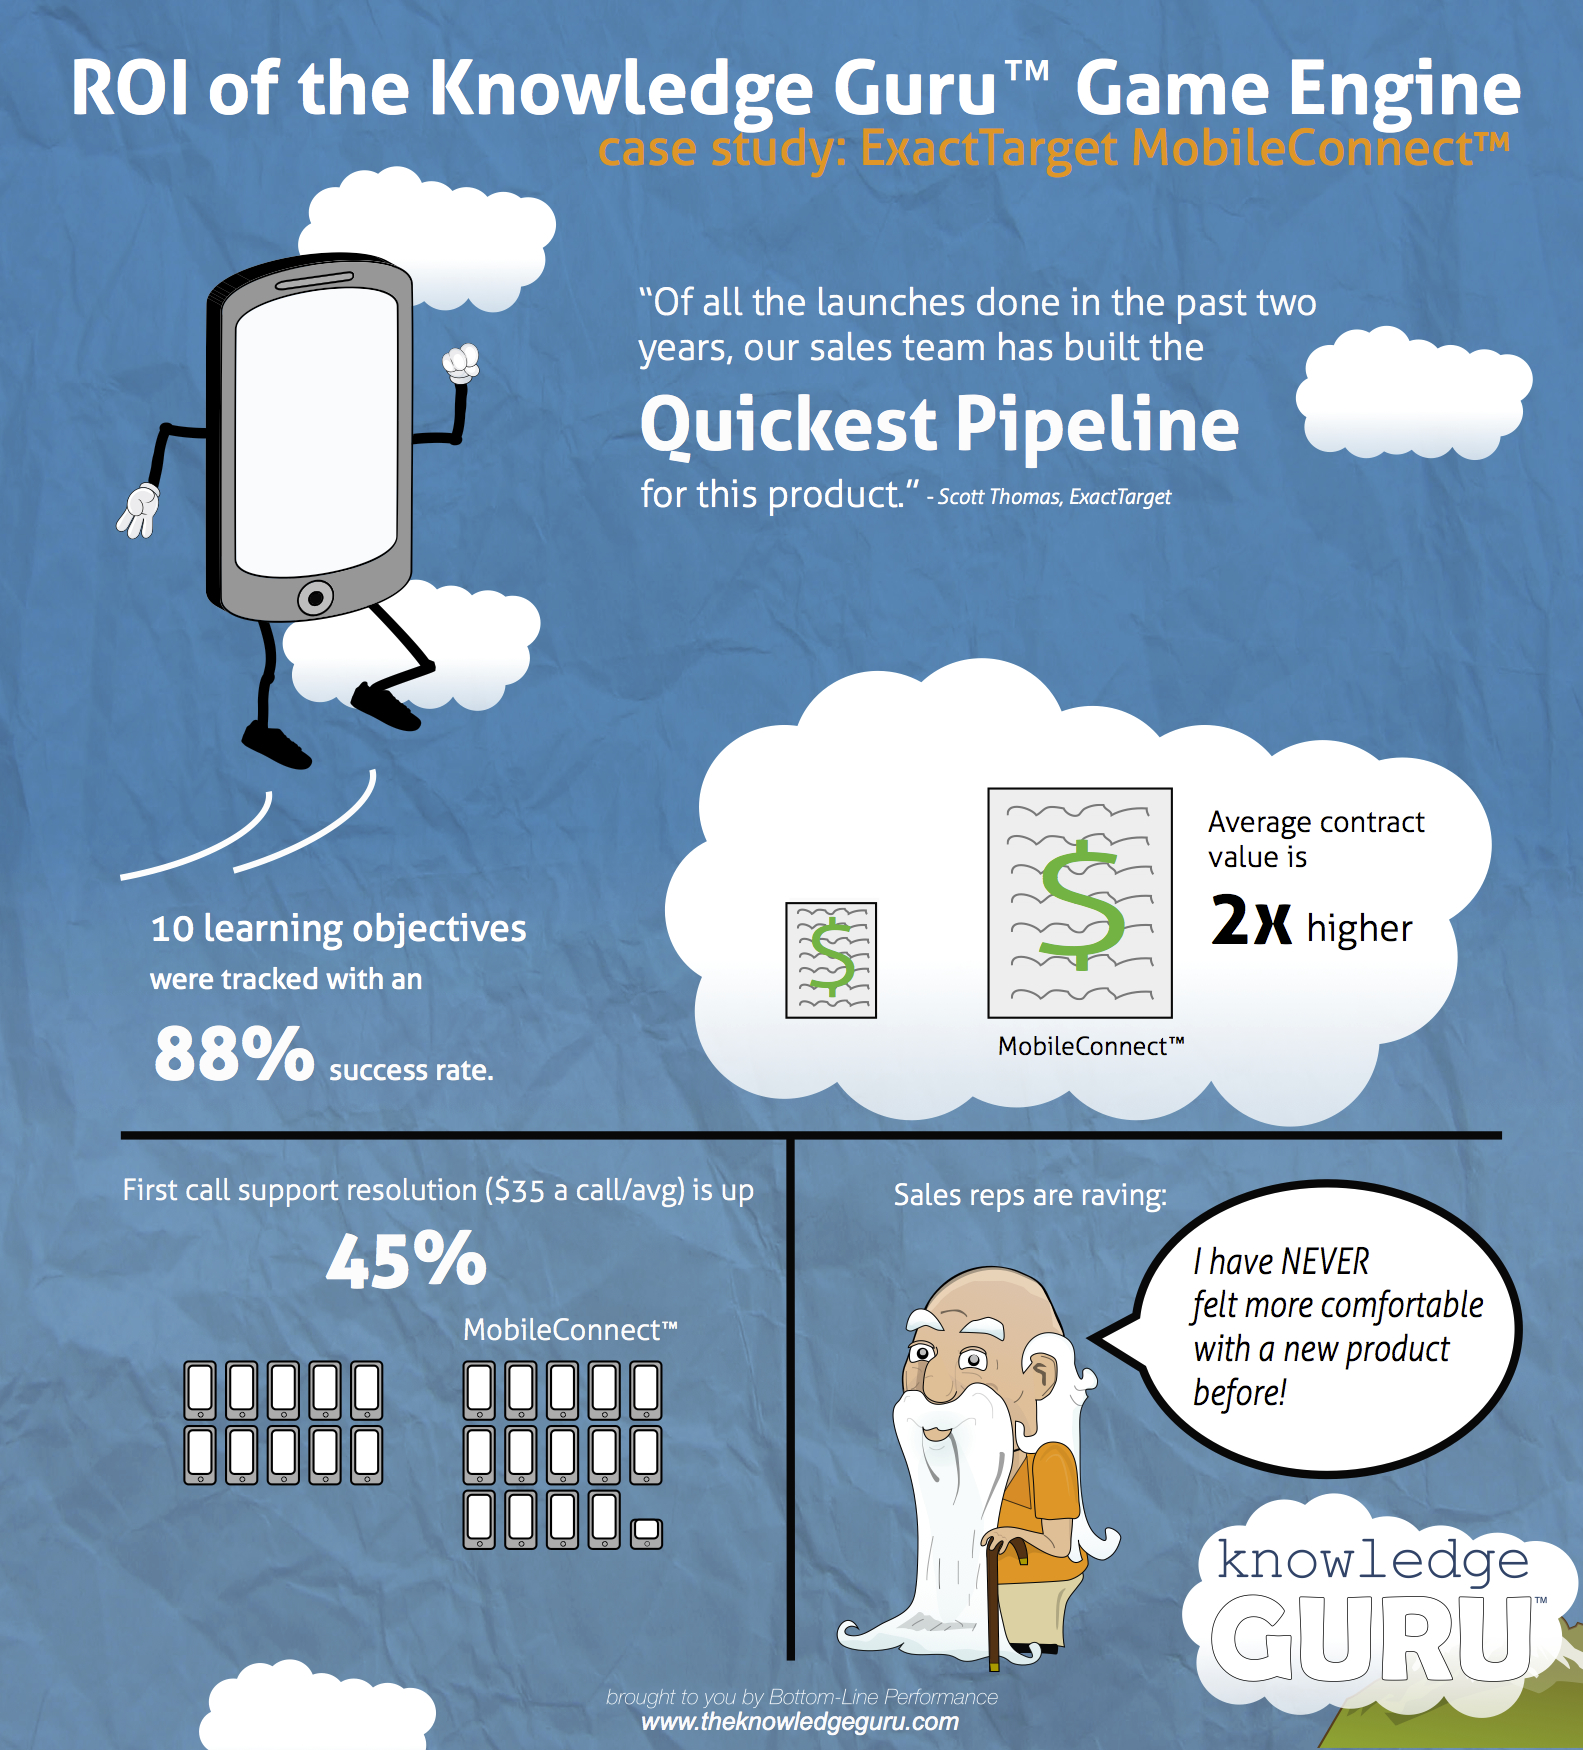 ROI of Learning Games: Knowledge Guru and ExactTarget